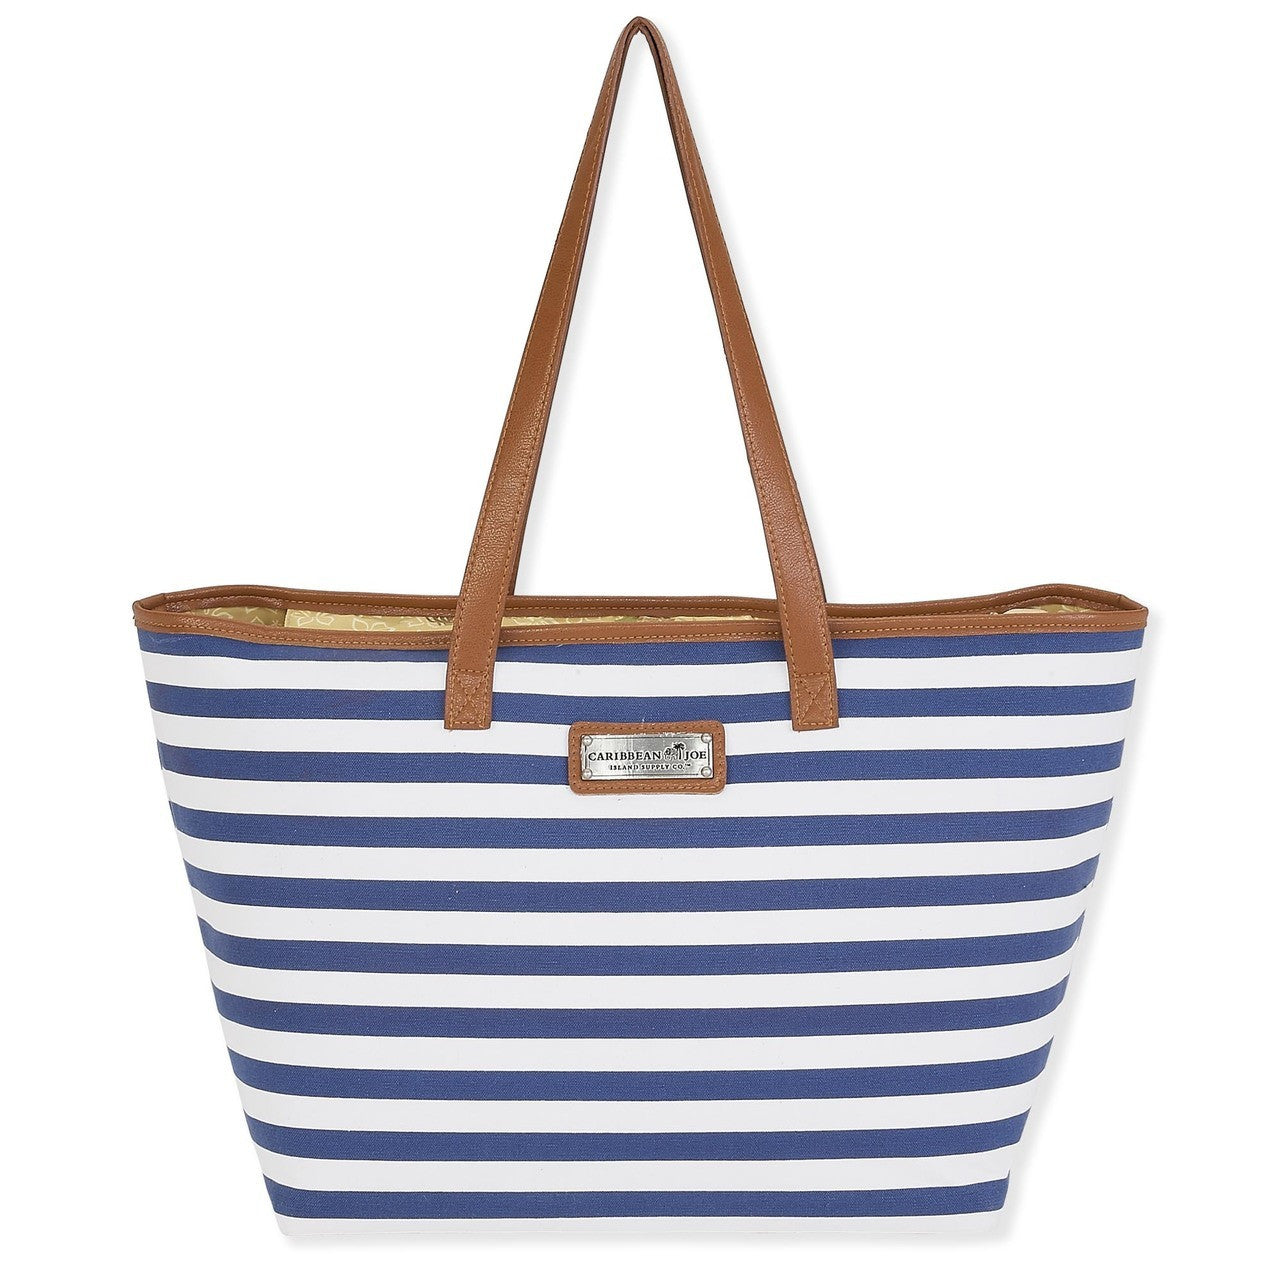 Faux Leather strapped tote bag  Zip top  Canvas material  navy and white stripes